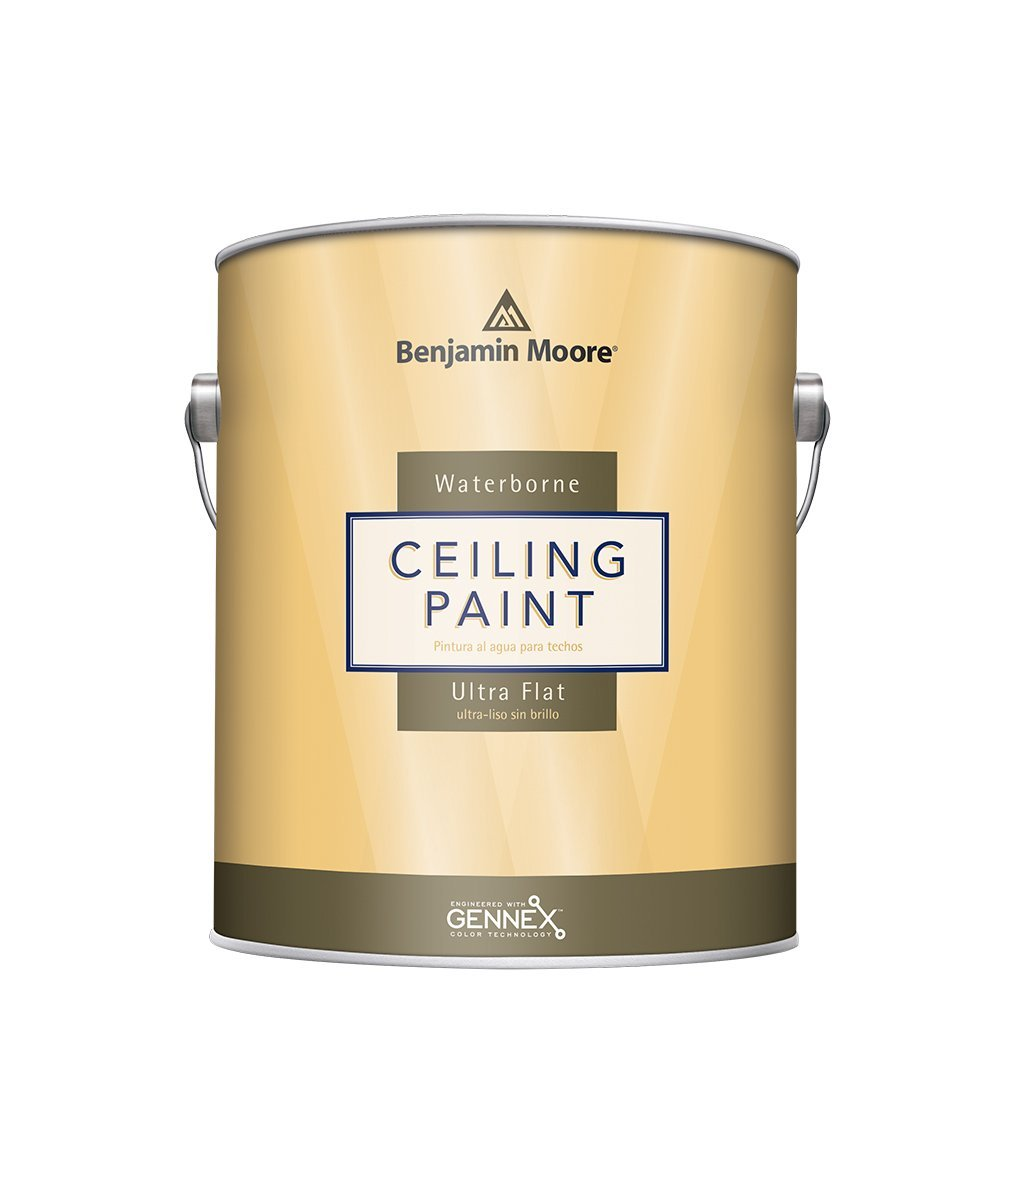 Benjamin Moore Waterborne Ceiling Paint , available at Johnson Paint & Maine Paint in MA, NH & ME.